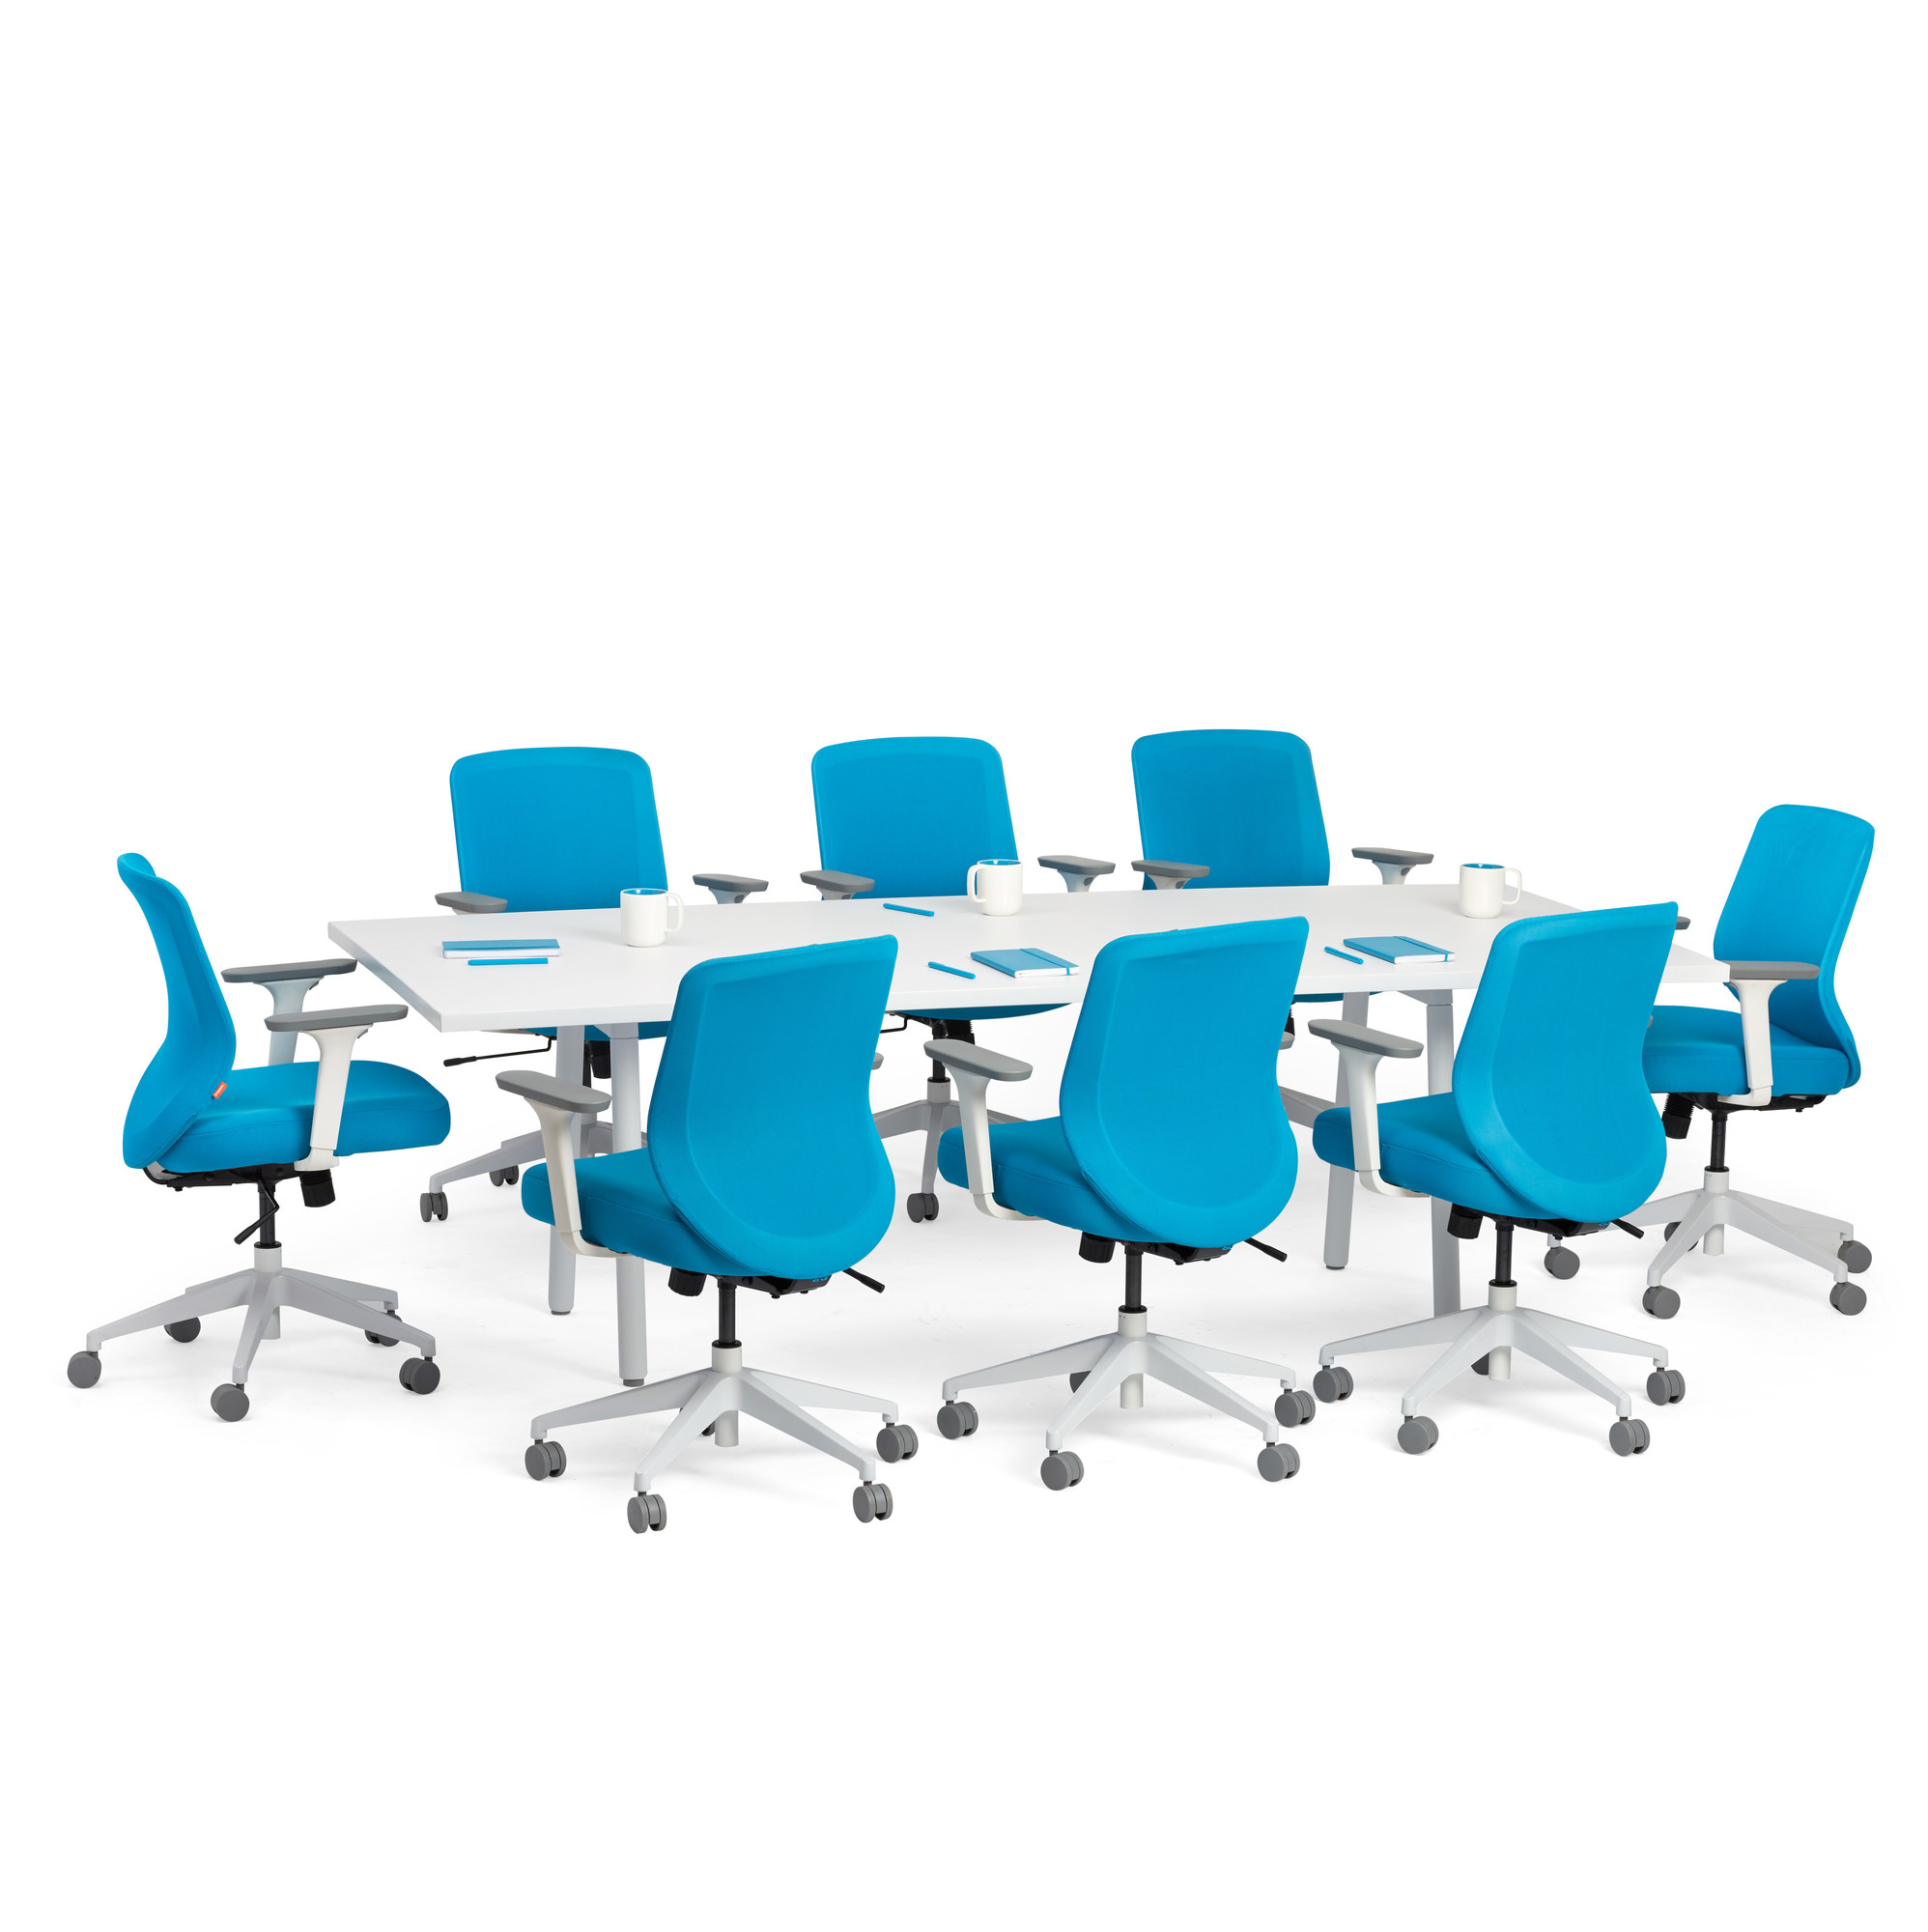 Series A Conference Table White Legs Modern Office Furniture Poppin - Blue conference table